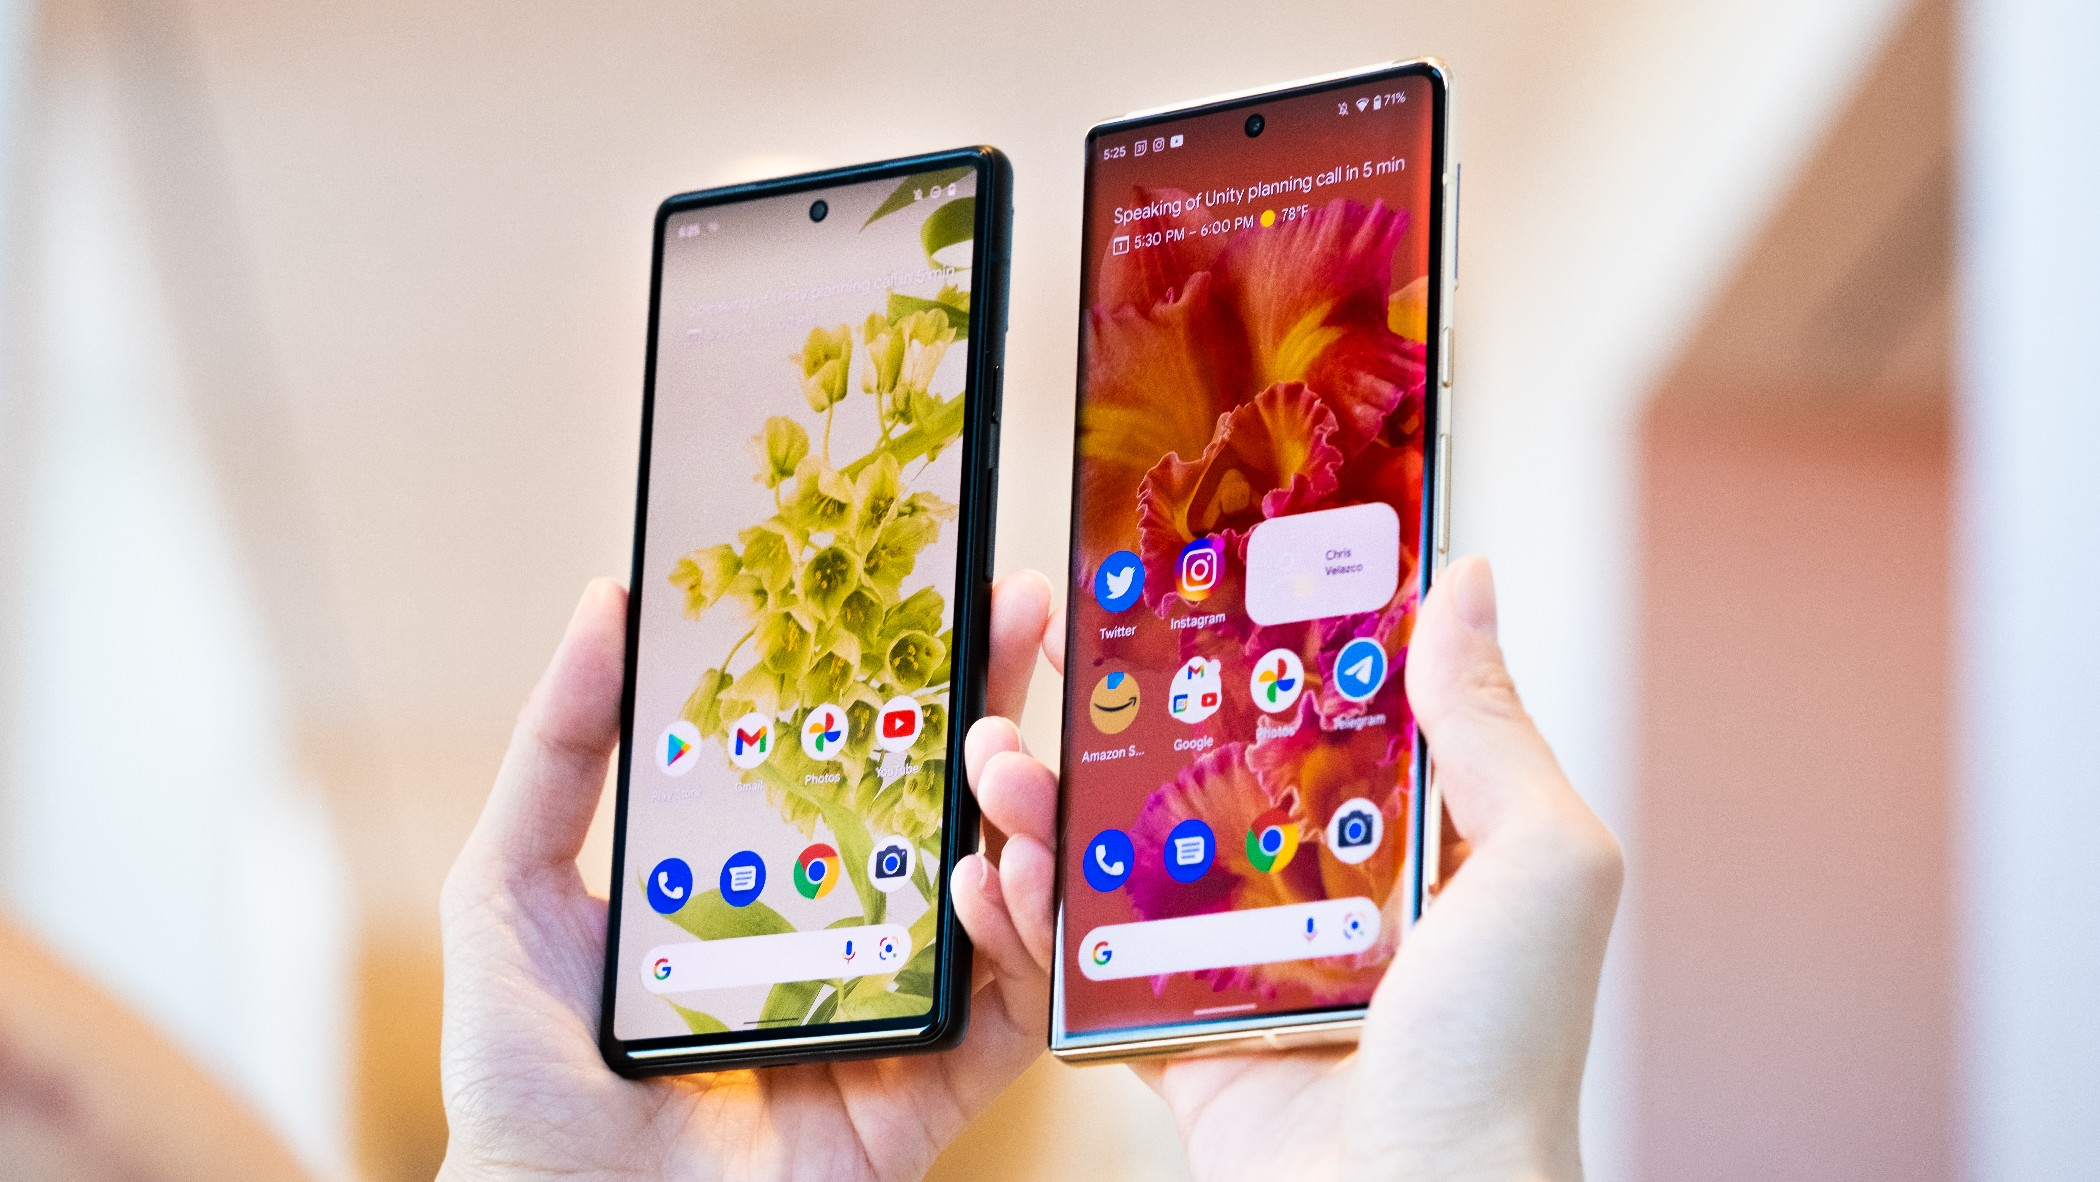 The Google Pixel 6 and 6 Pro held in mid-air with their screens facing the camera.